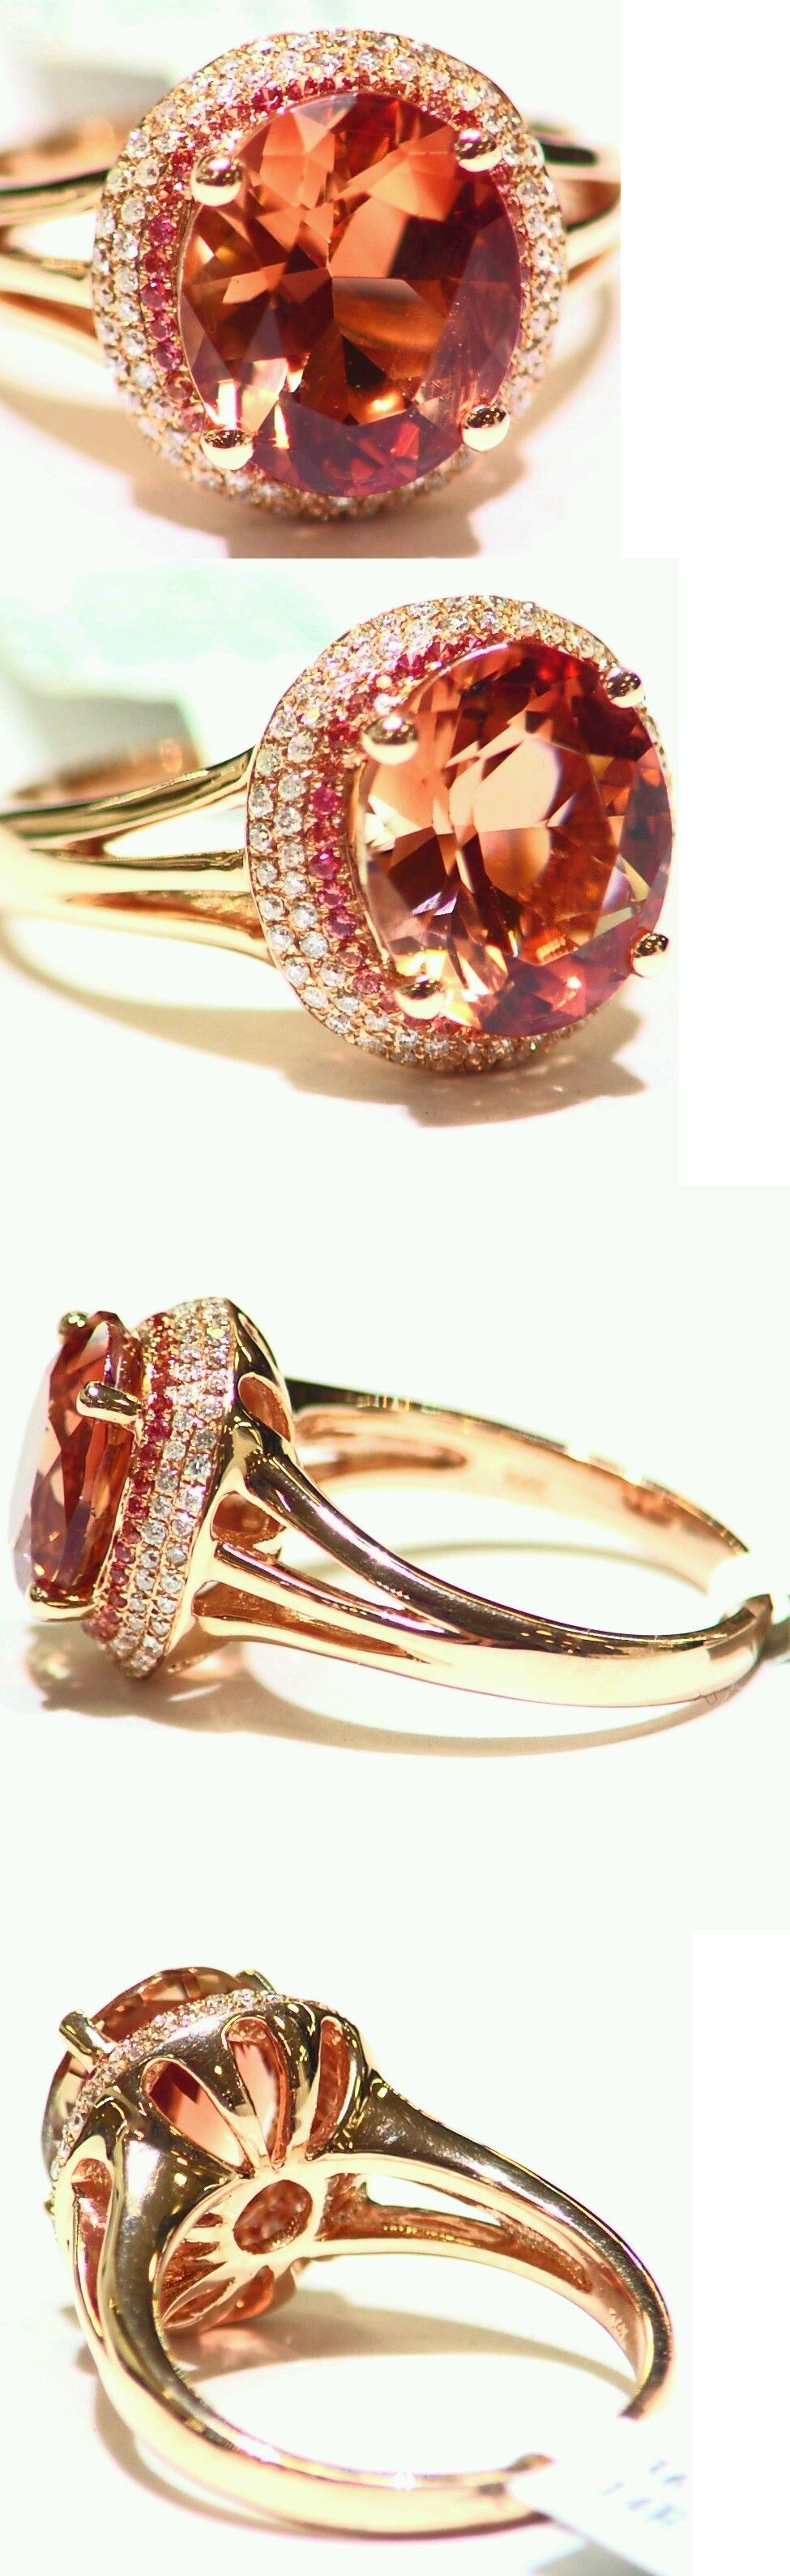 ring engagement il p sunstone oregon in solitaire made ethical gold gemstone order peach to recycled fullxfull rings